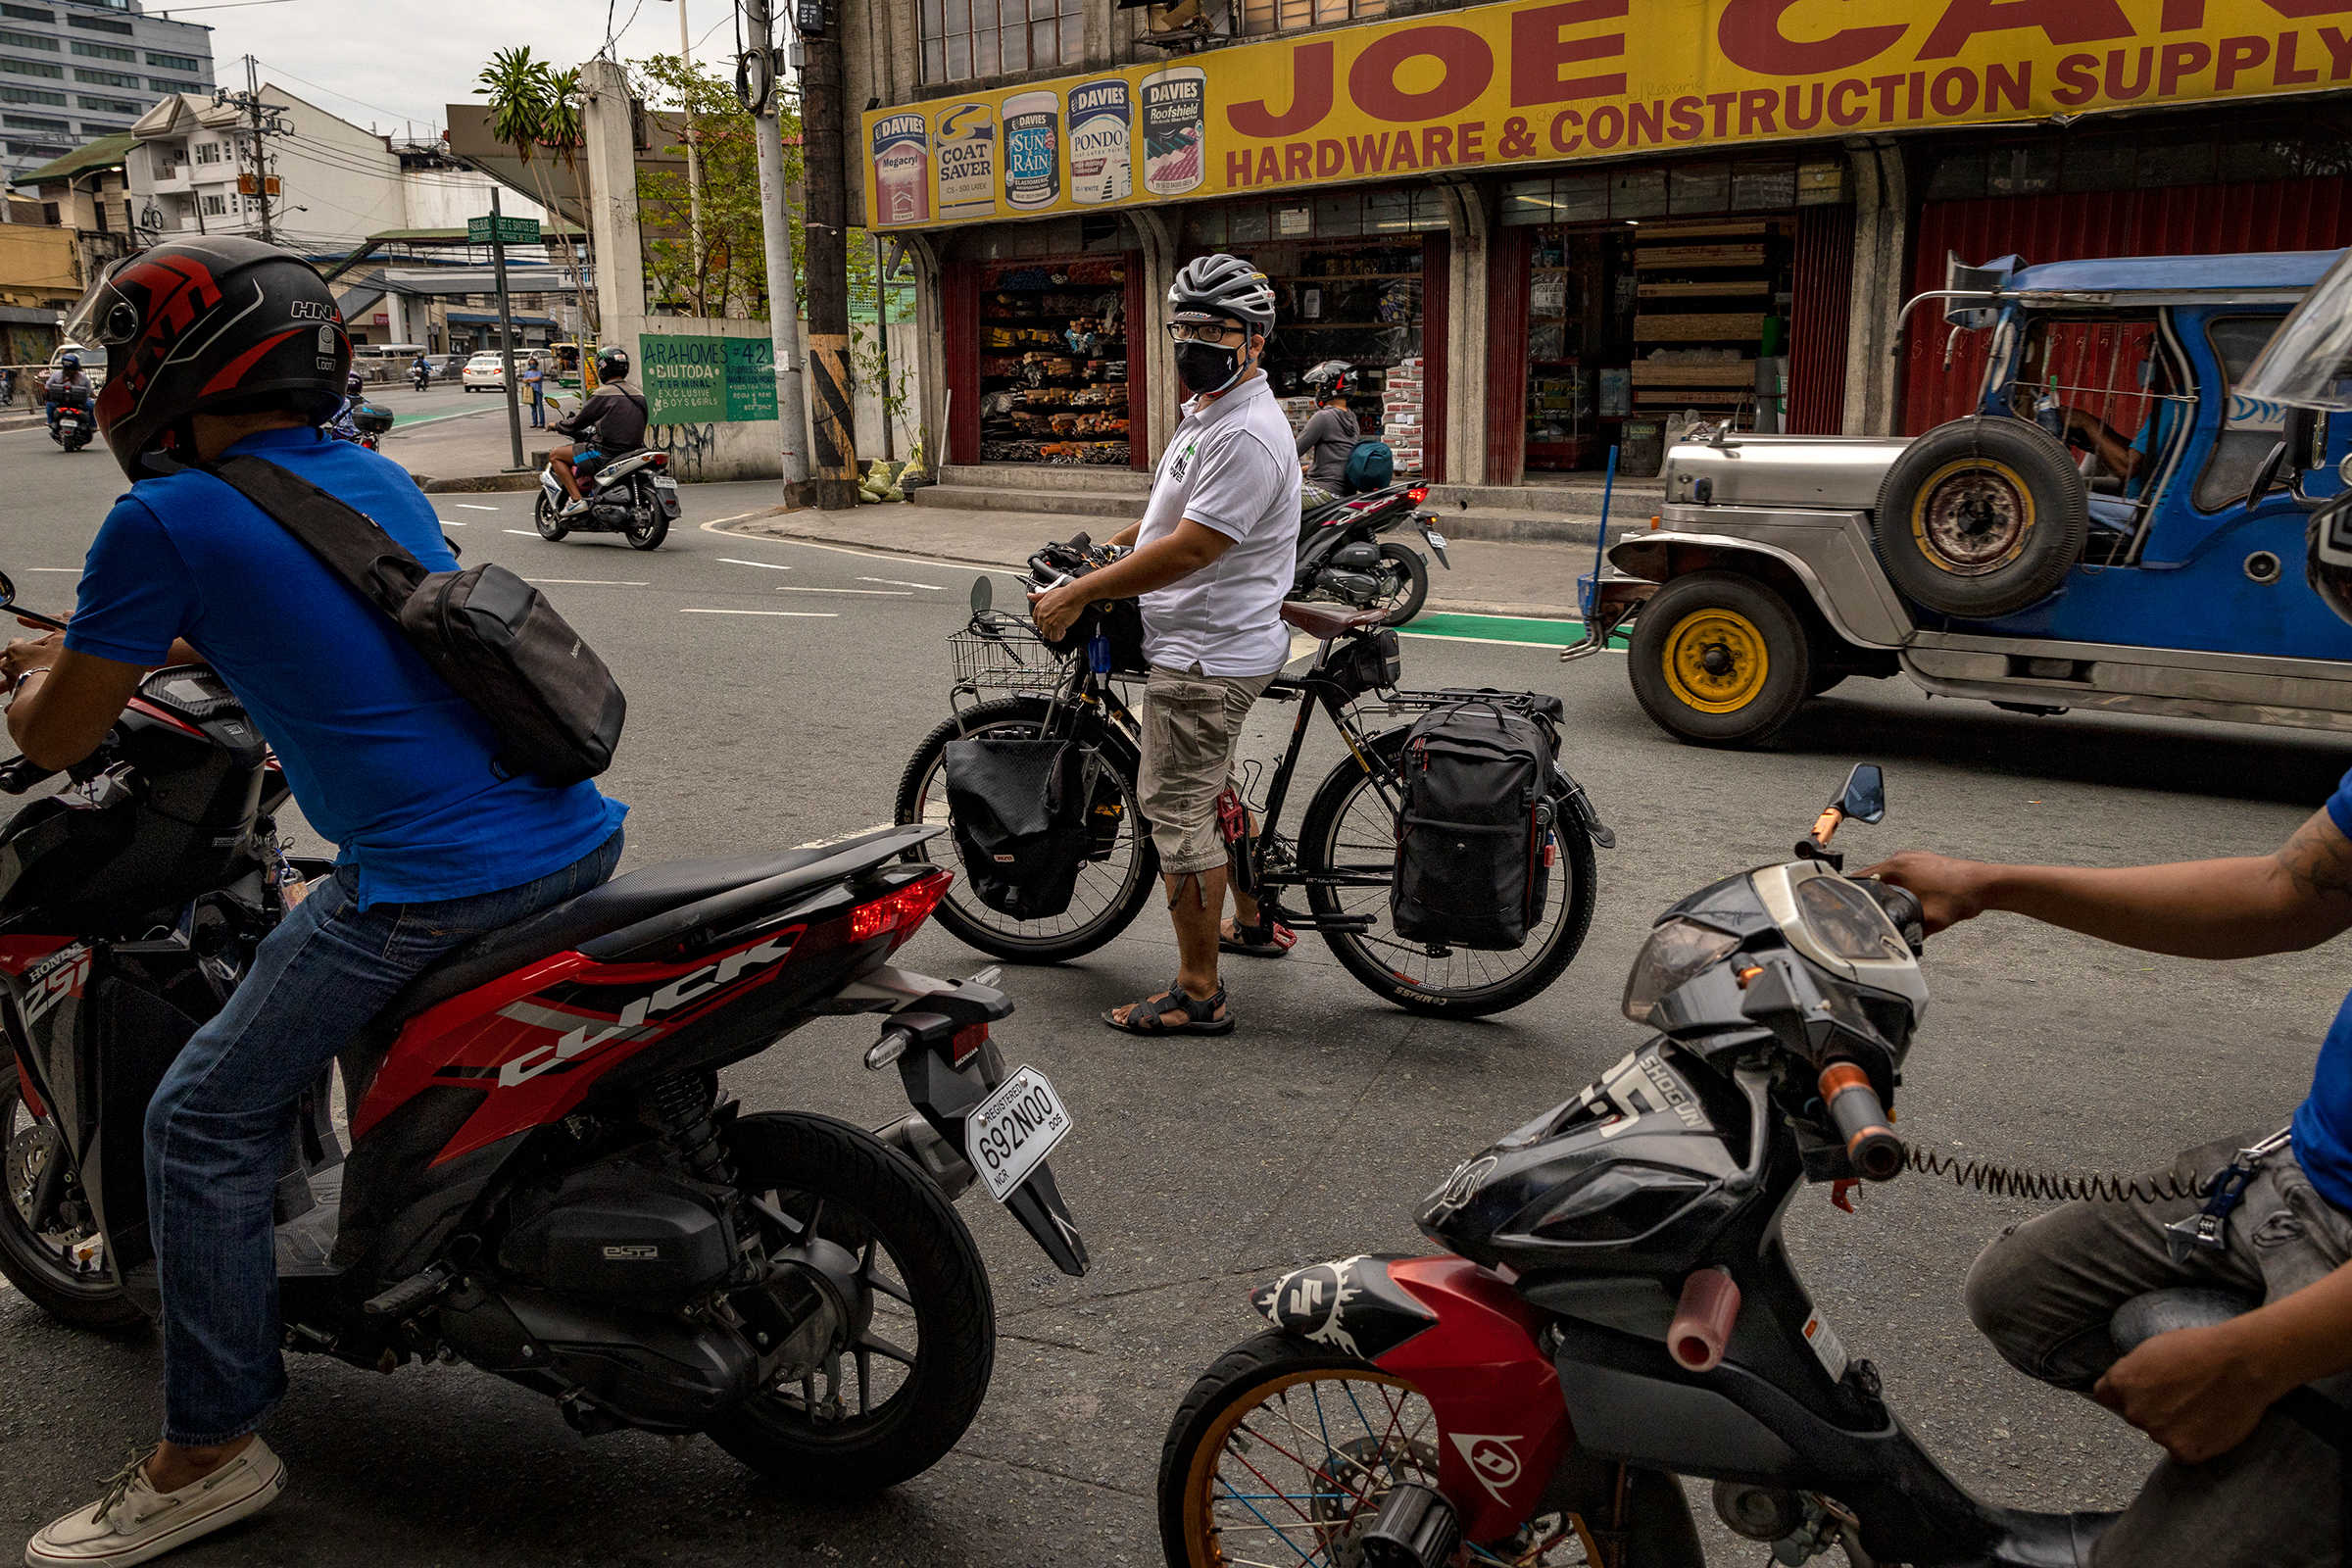 Dr. Alejandro Umali, a physician working at a private hospital, rides his bike to work in Pasig, Metro Manila, on April 26. Many Filipinos, including health care workers, are hopping on bicycles as an alternative means of transportation as public transit remains restricted during the world's longest COVID-19 lockdown.